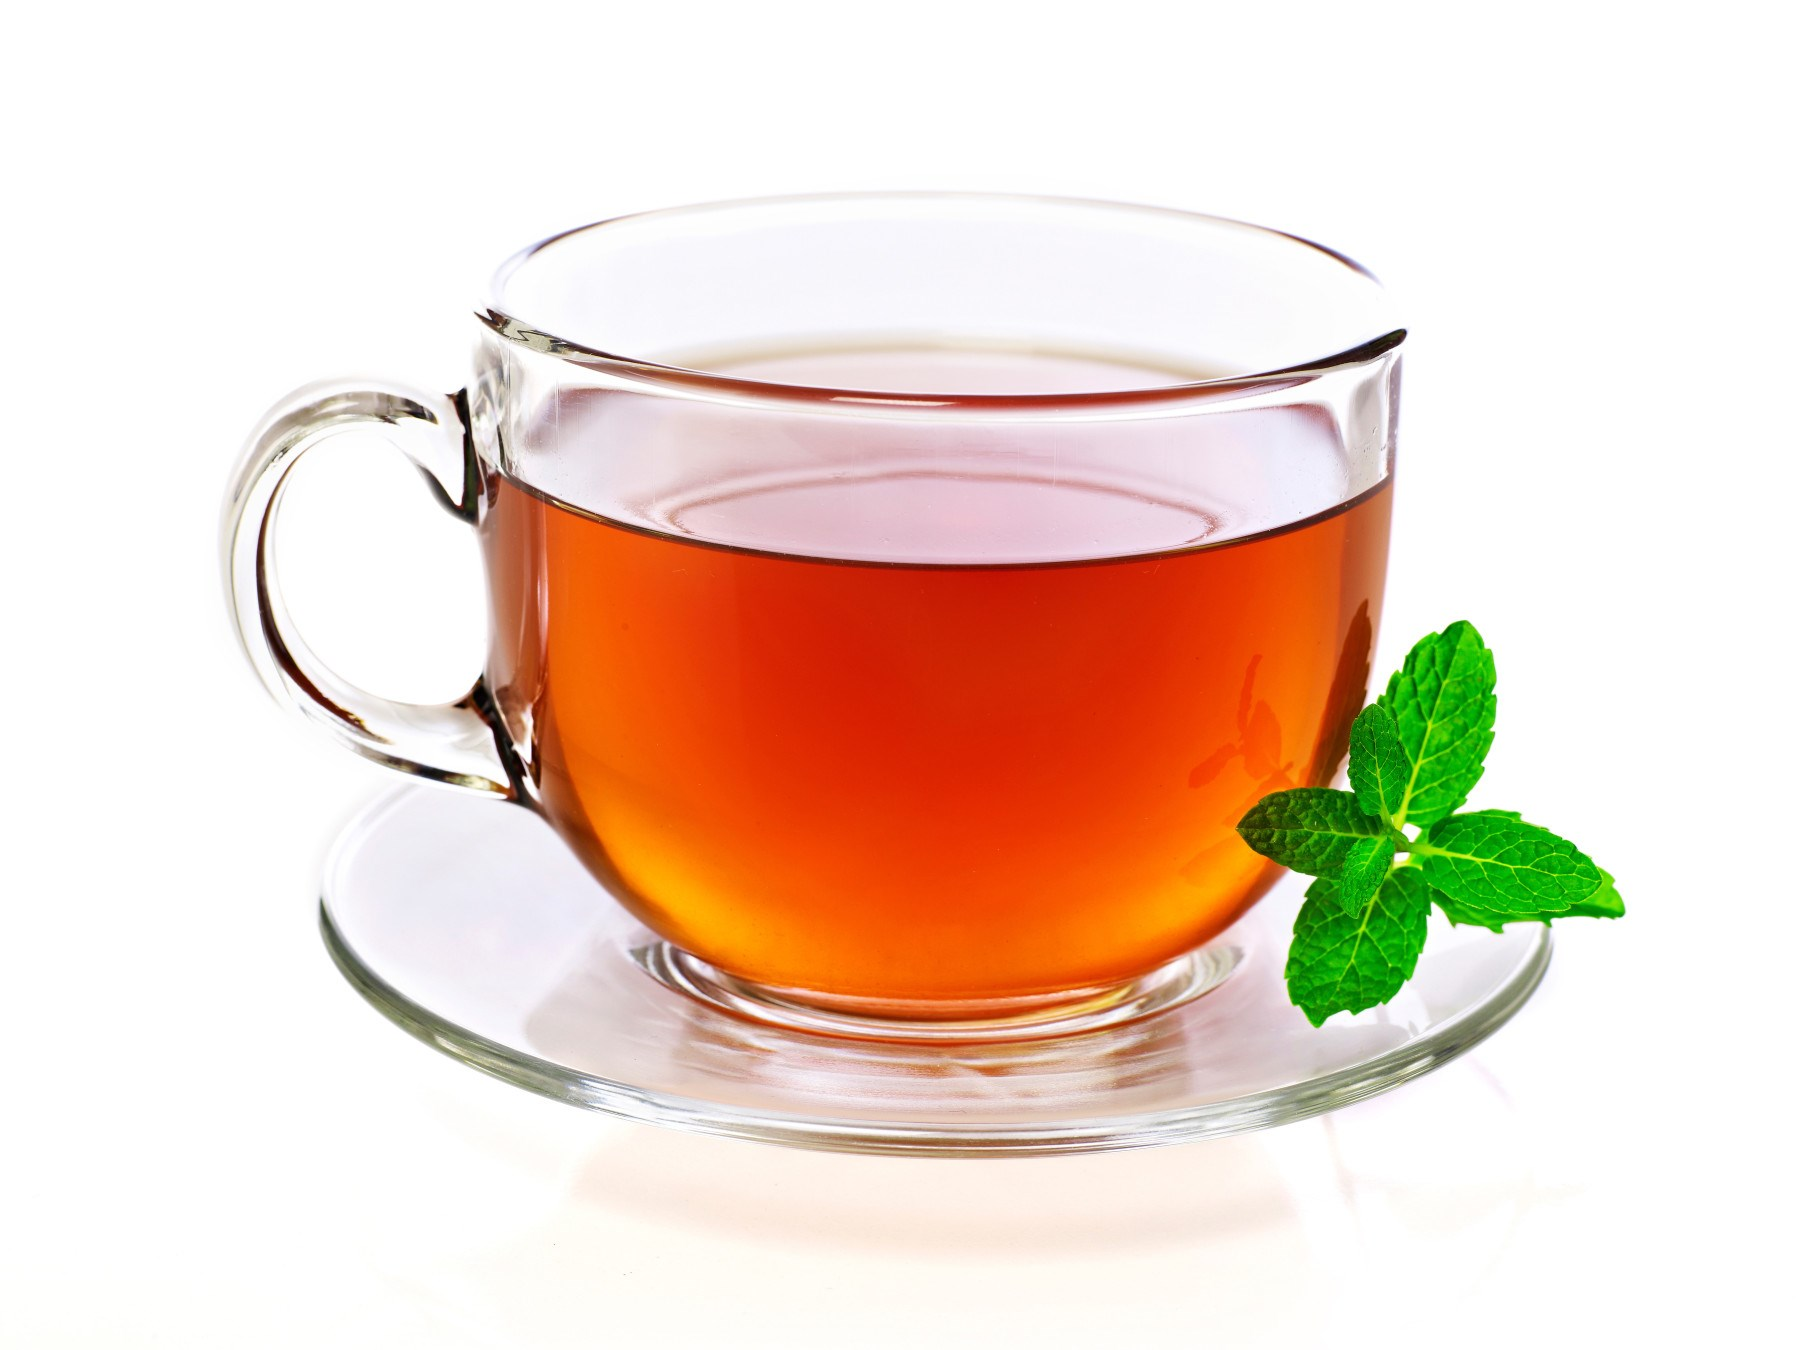 cup of tea images